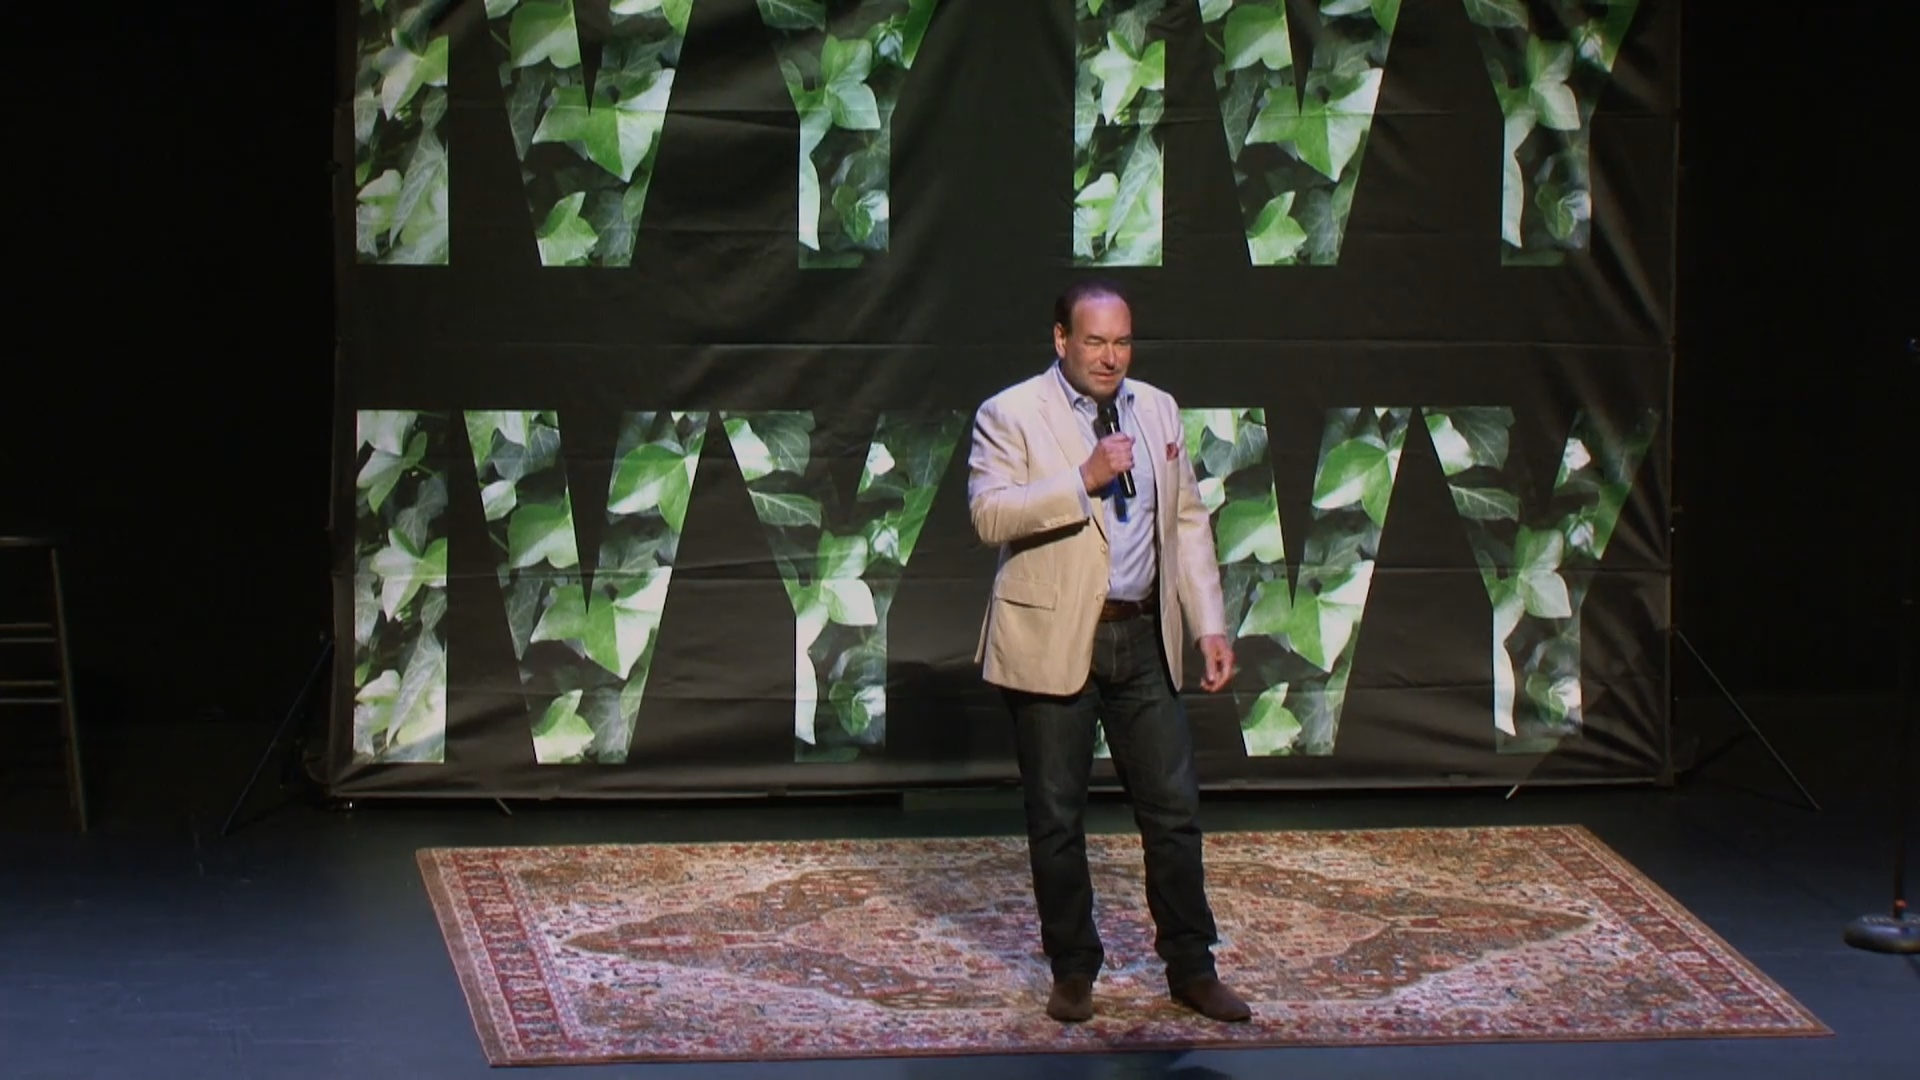 comedian Shaun Eli on stage in front of Ivy logo banner